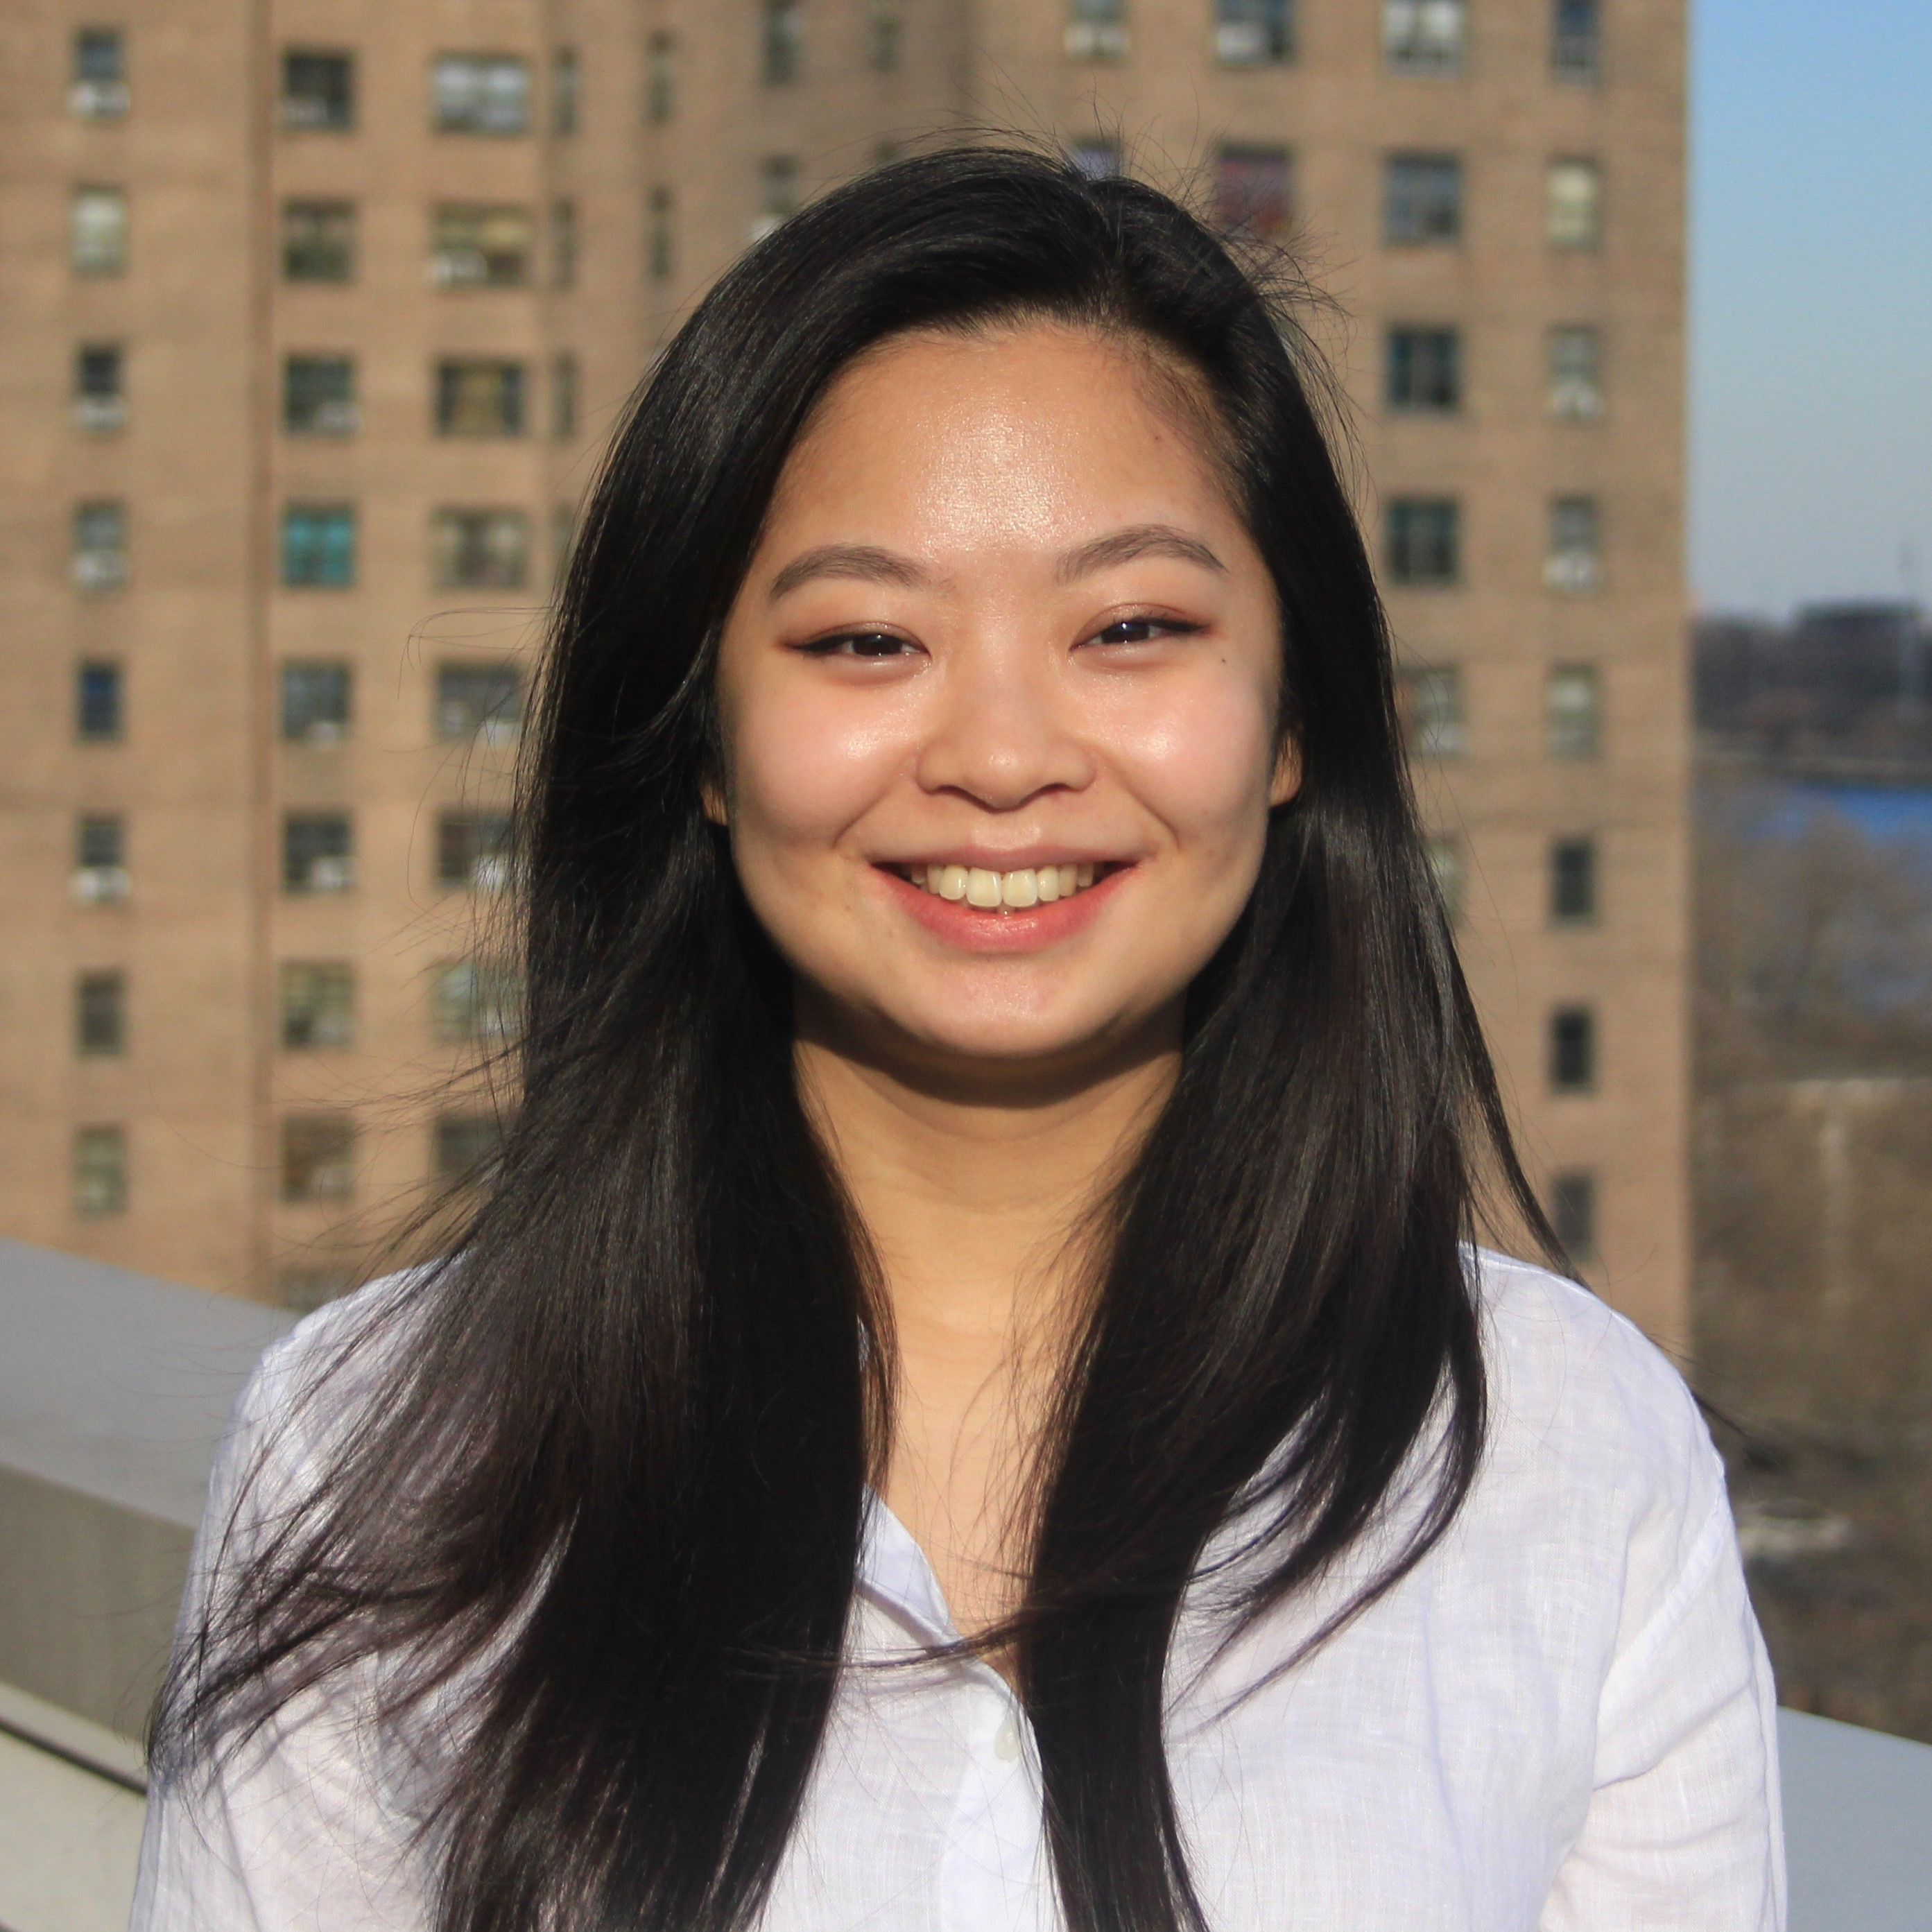 Connie was born and raised in New Jersey and studied Cognitive Science and Piano Performance at Northwestern University. She moved back to the east coast after graduation and now currently works as a software engineer at a startup.